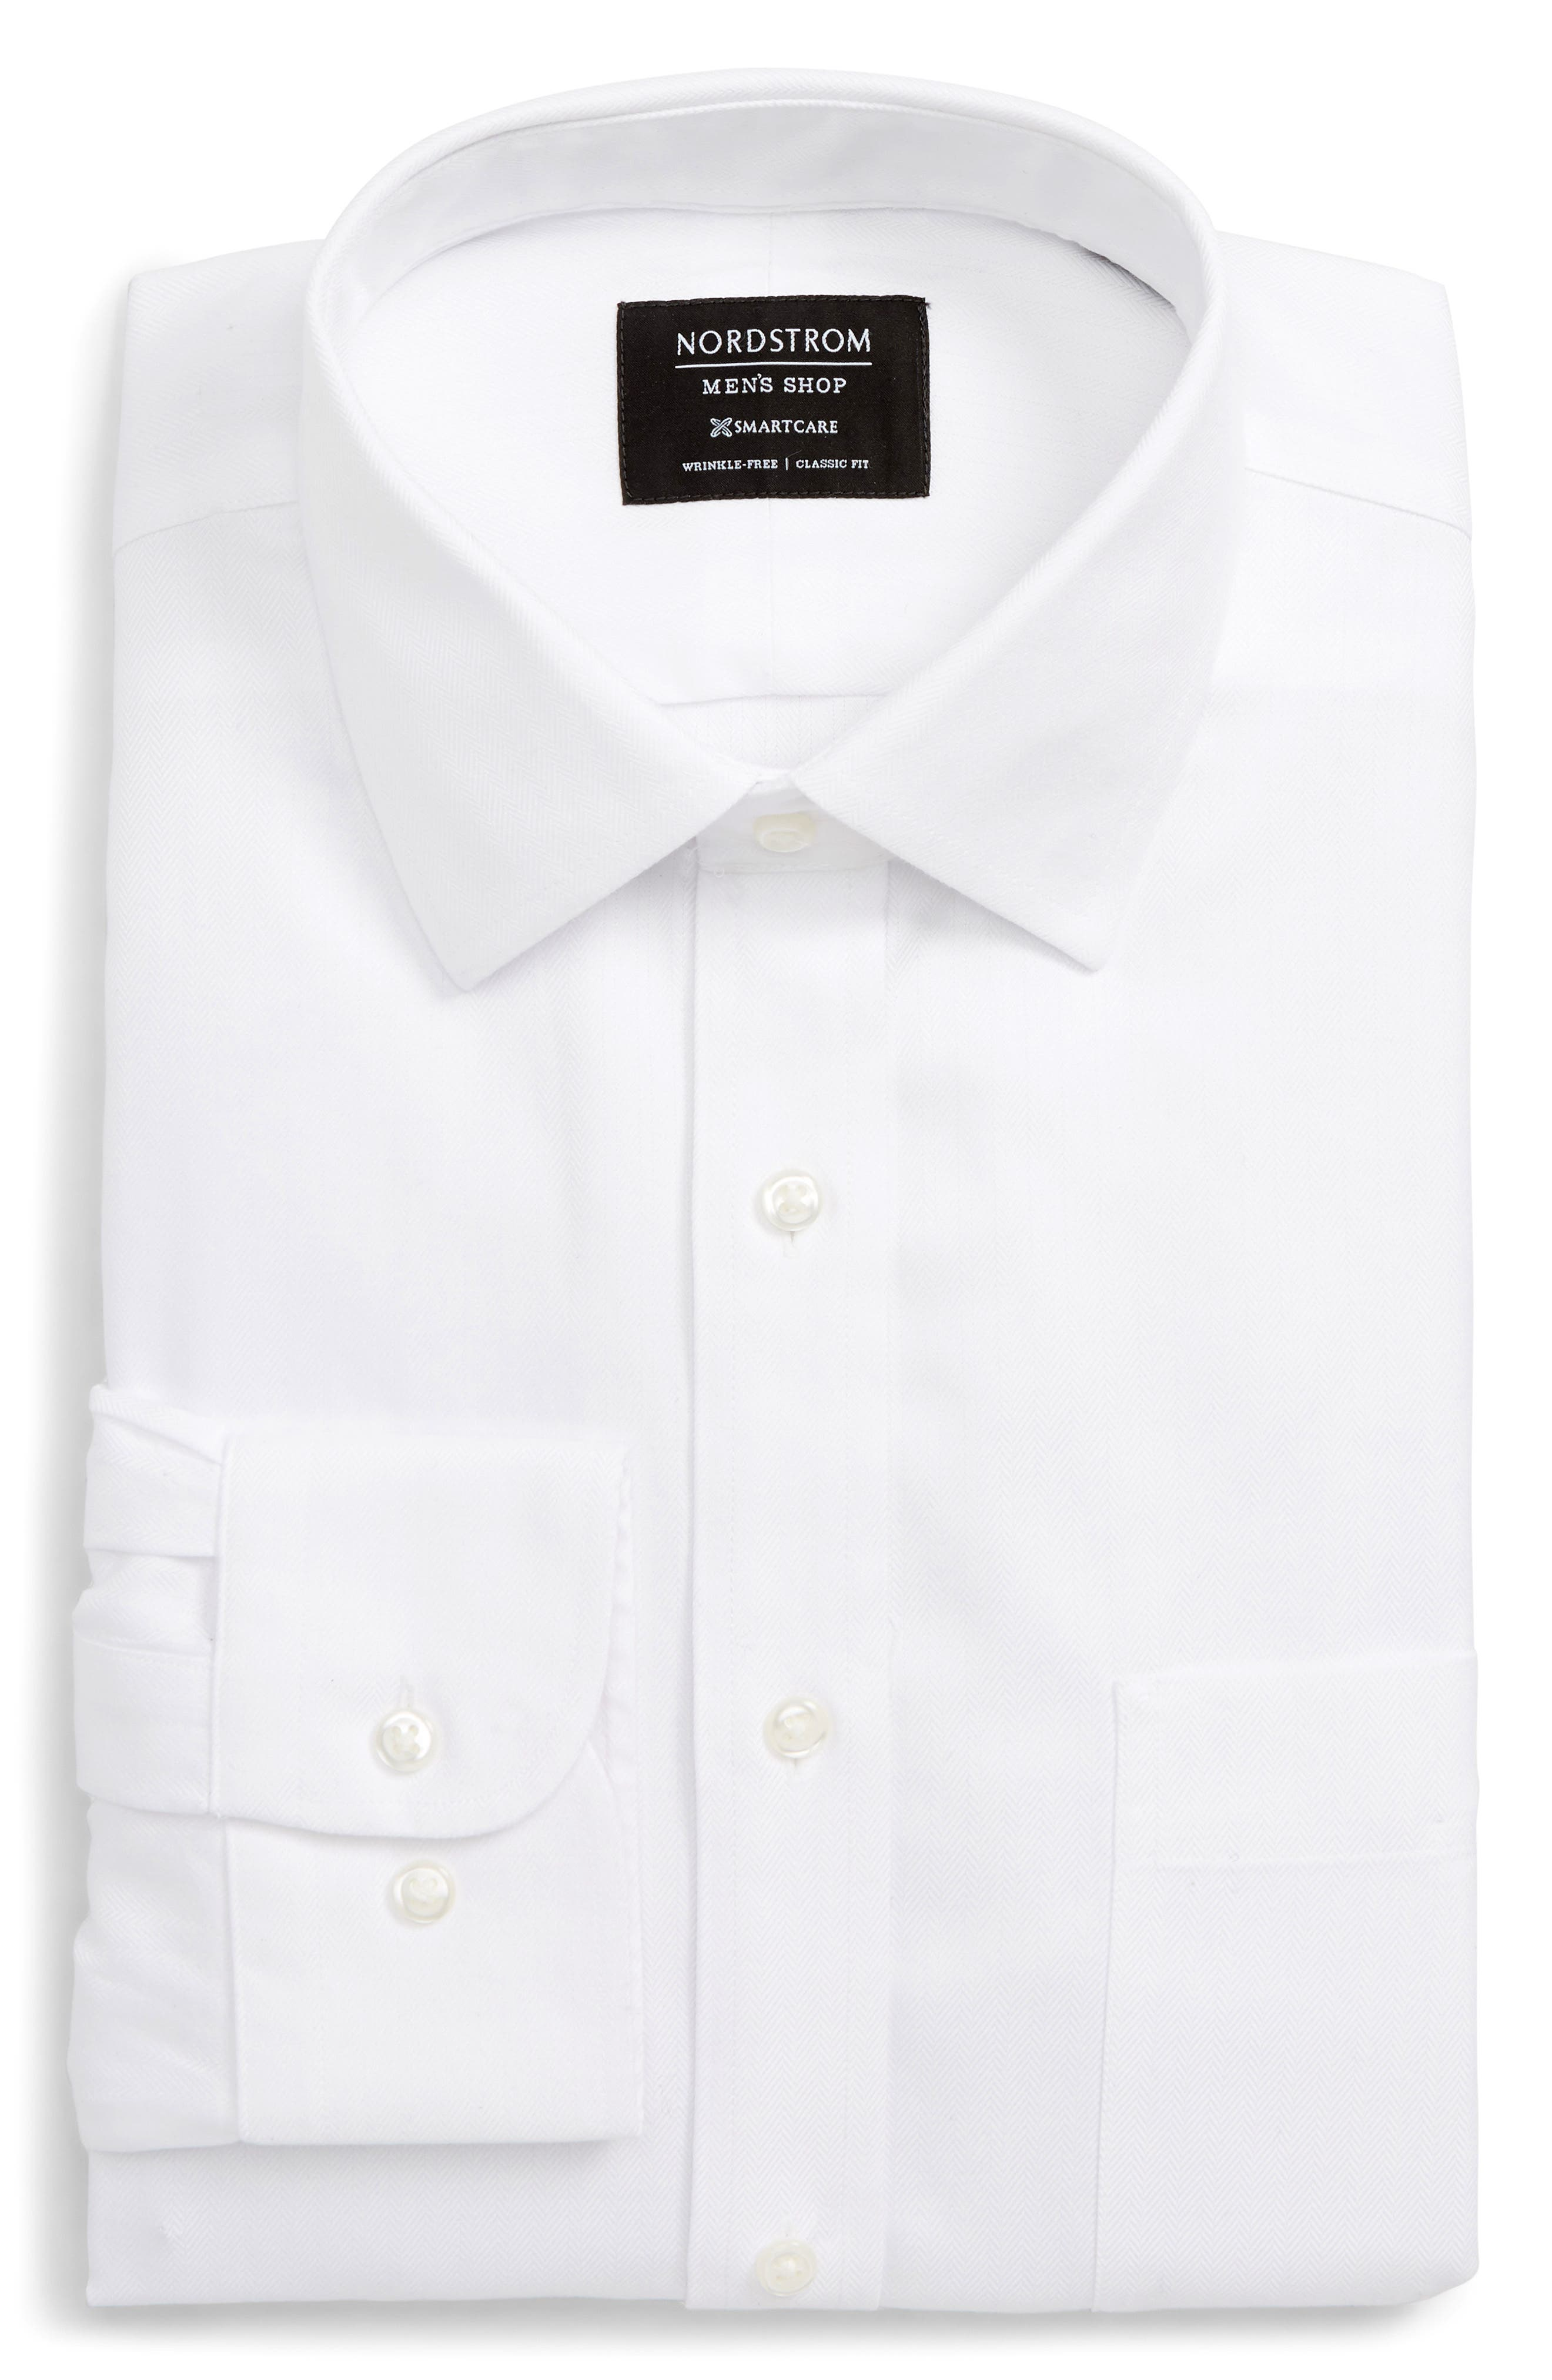 Nordstrom Shop Smartcare(TM) Classic Fit Herringbone Dress Shirt, White